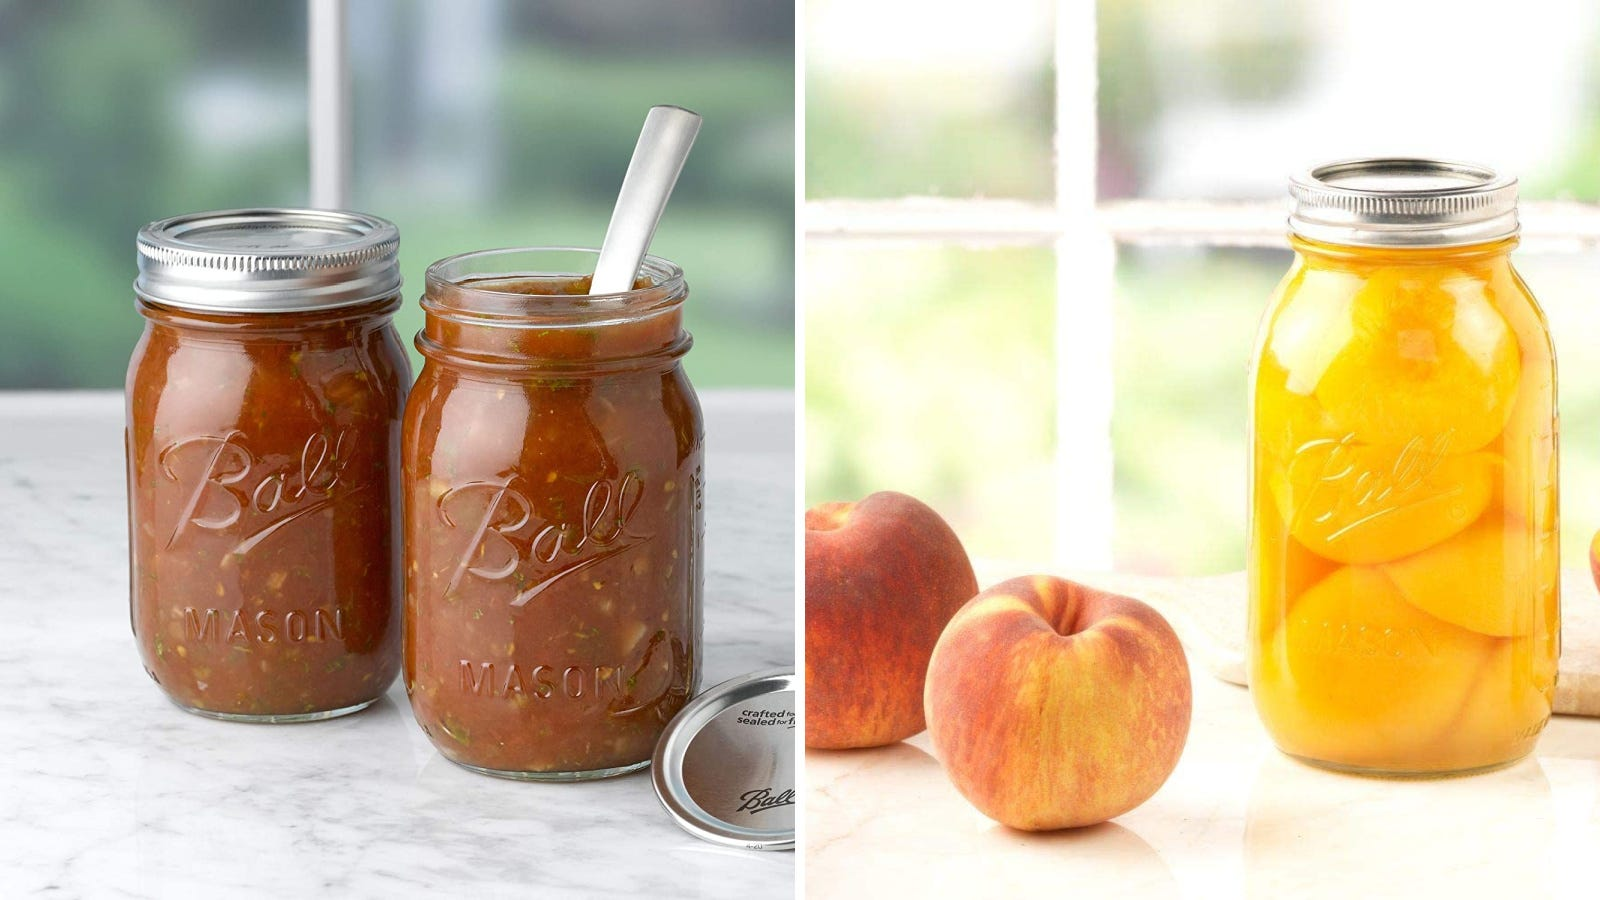 Two images of Ball mason jars used to make canned sauce and canned peaches.